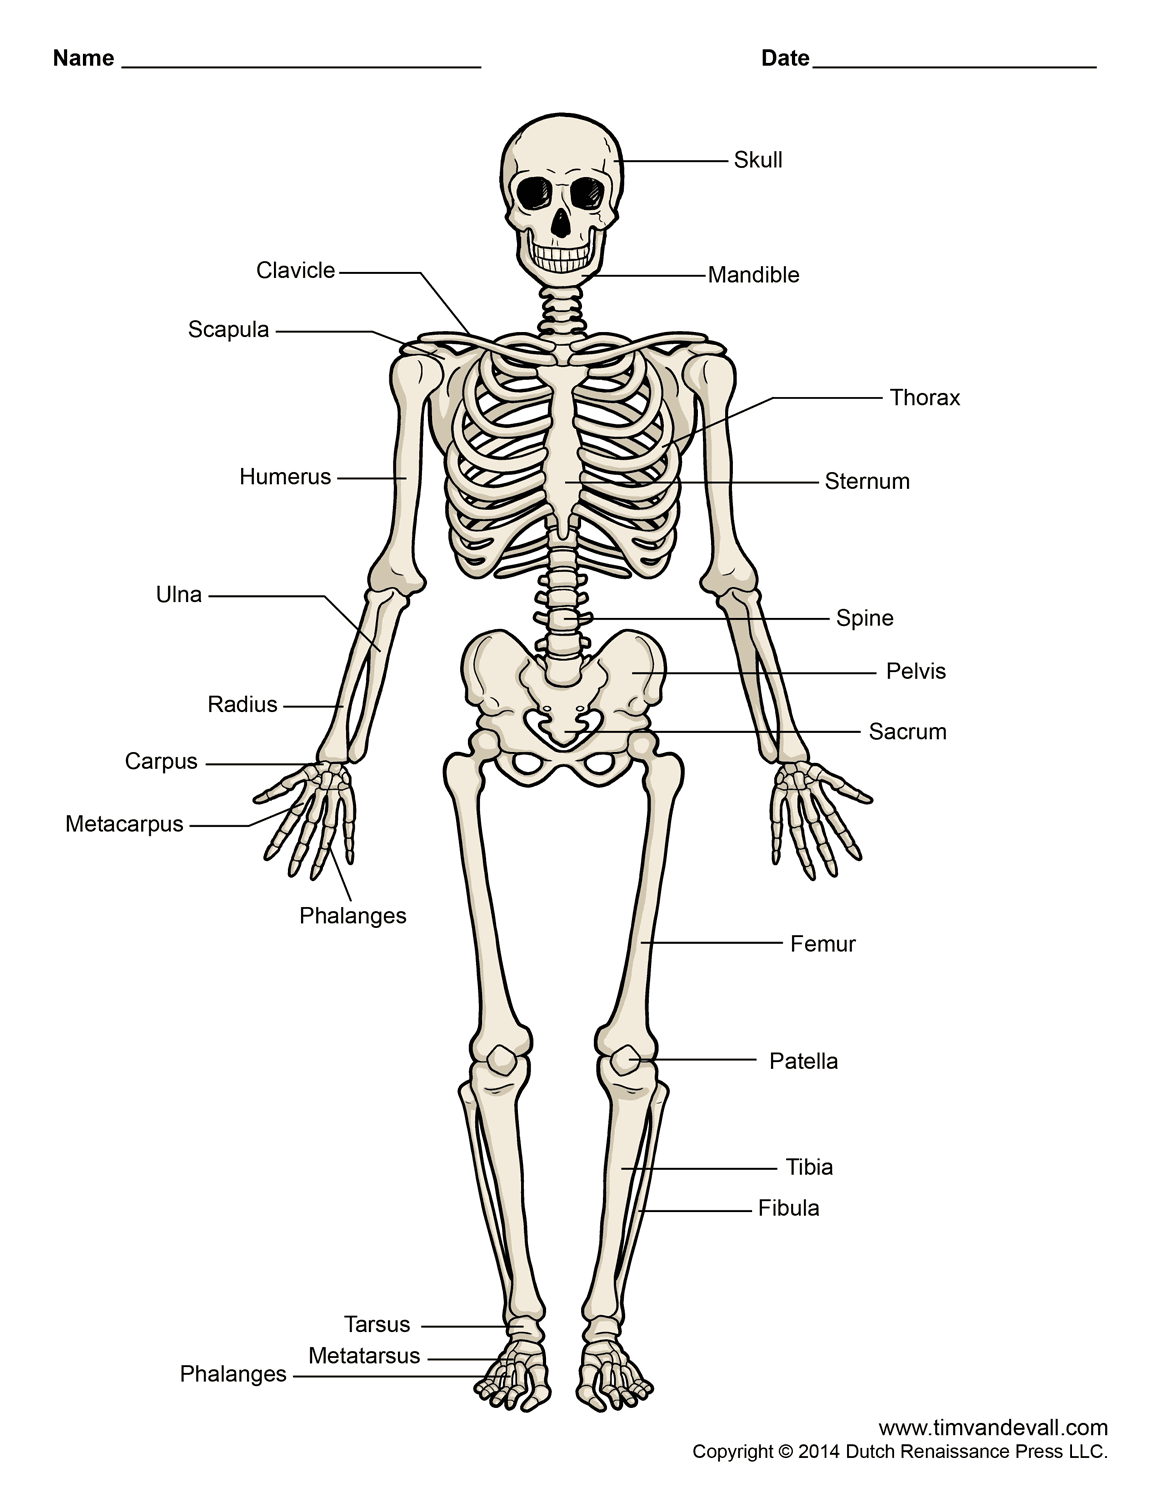 human-skeleton-diagram - tim van de vall, Skeleton